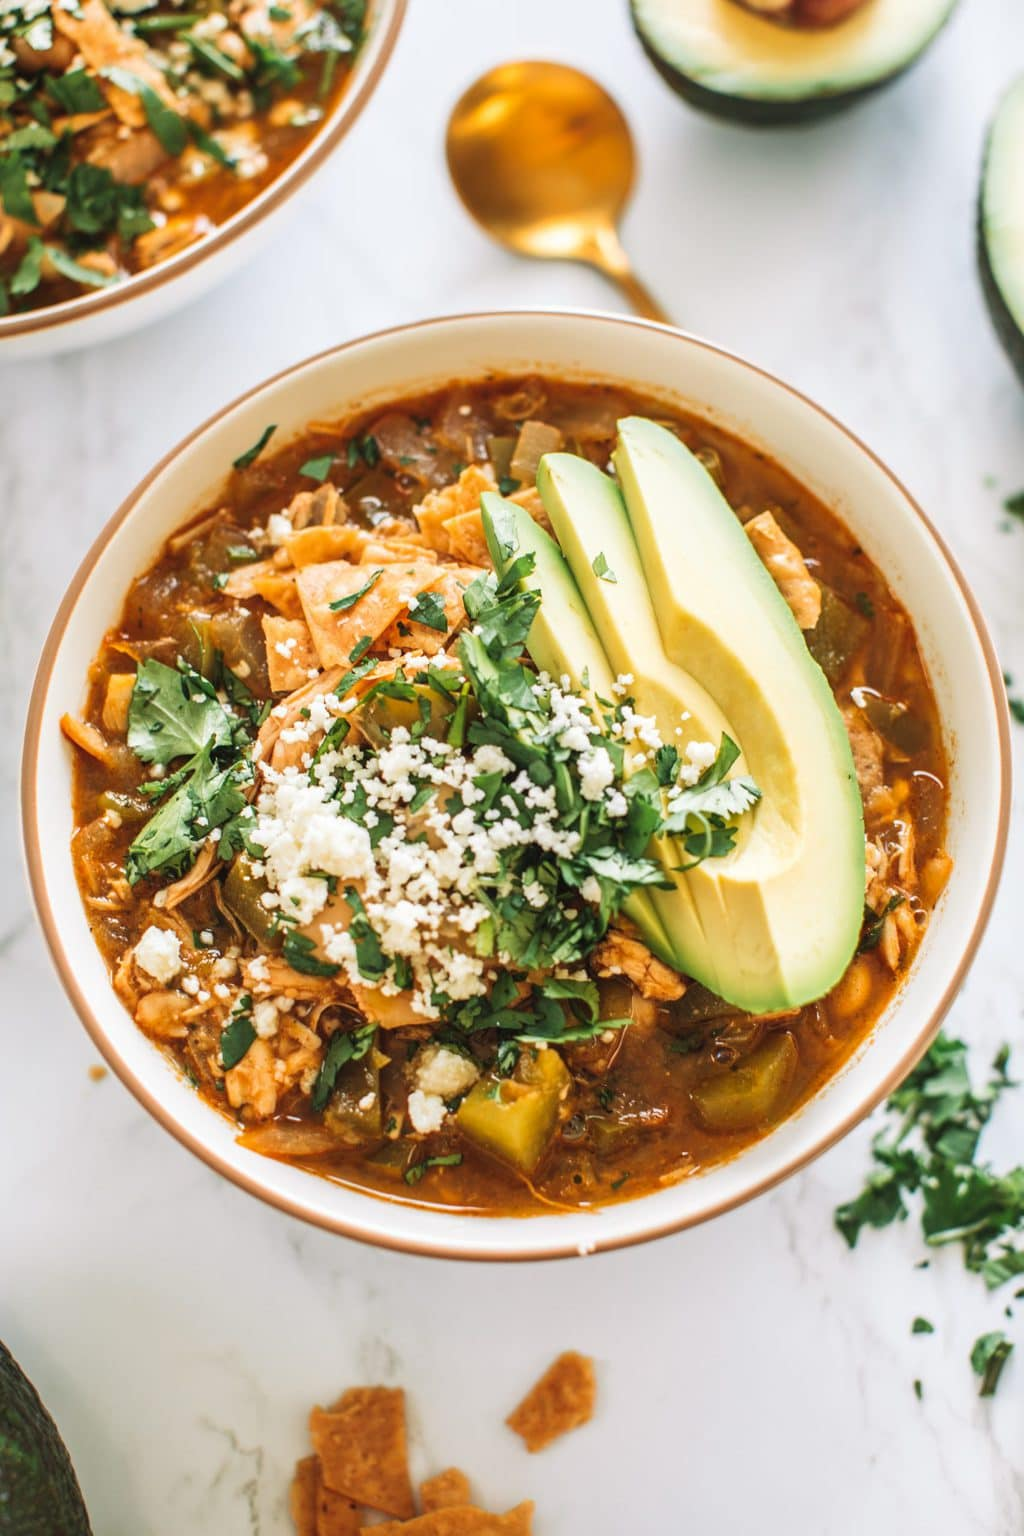 Chicken enchilada soup topped with tortilla chips, cotija cheese, cilantro and avocado slices.